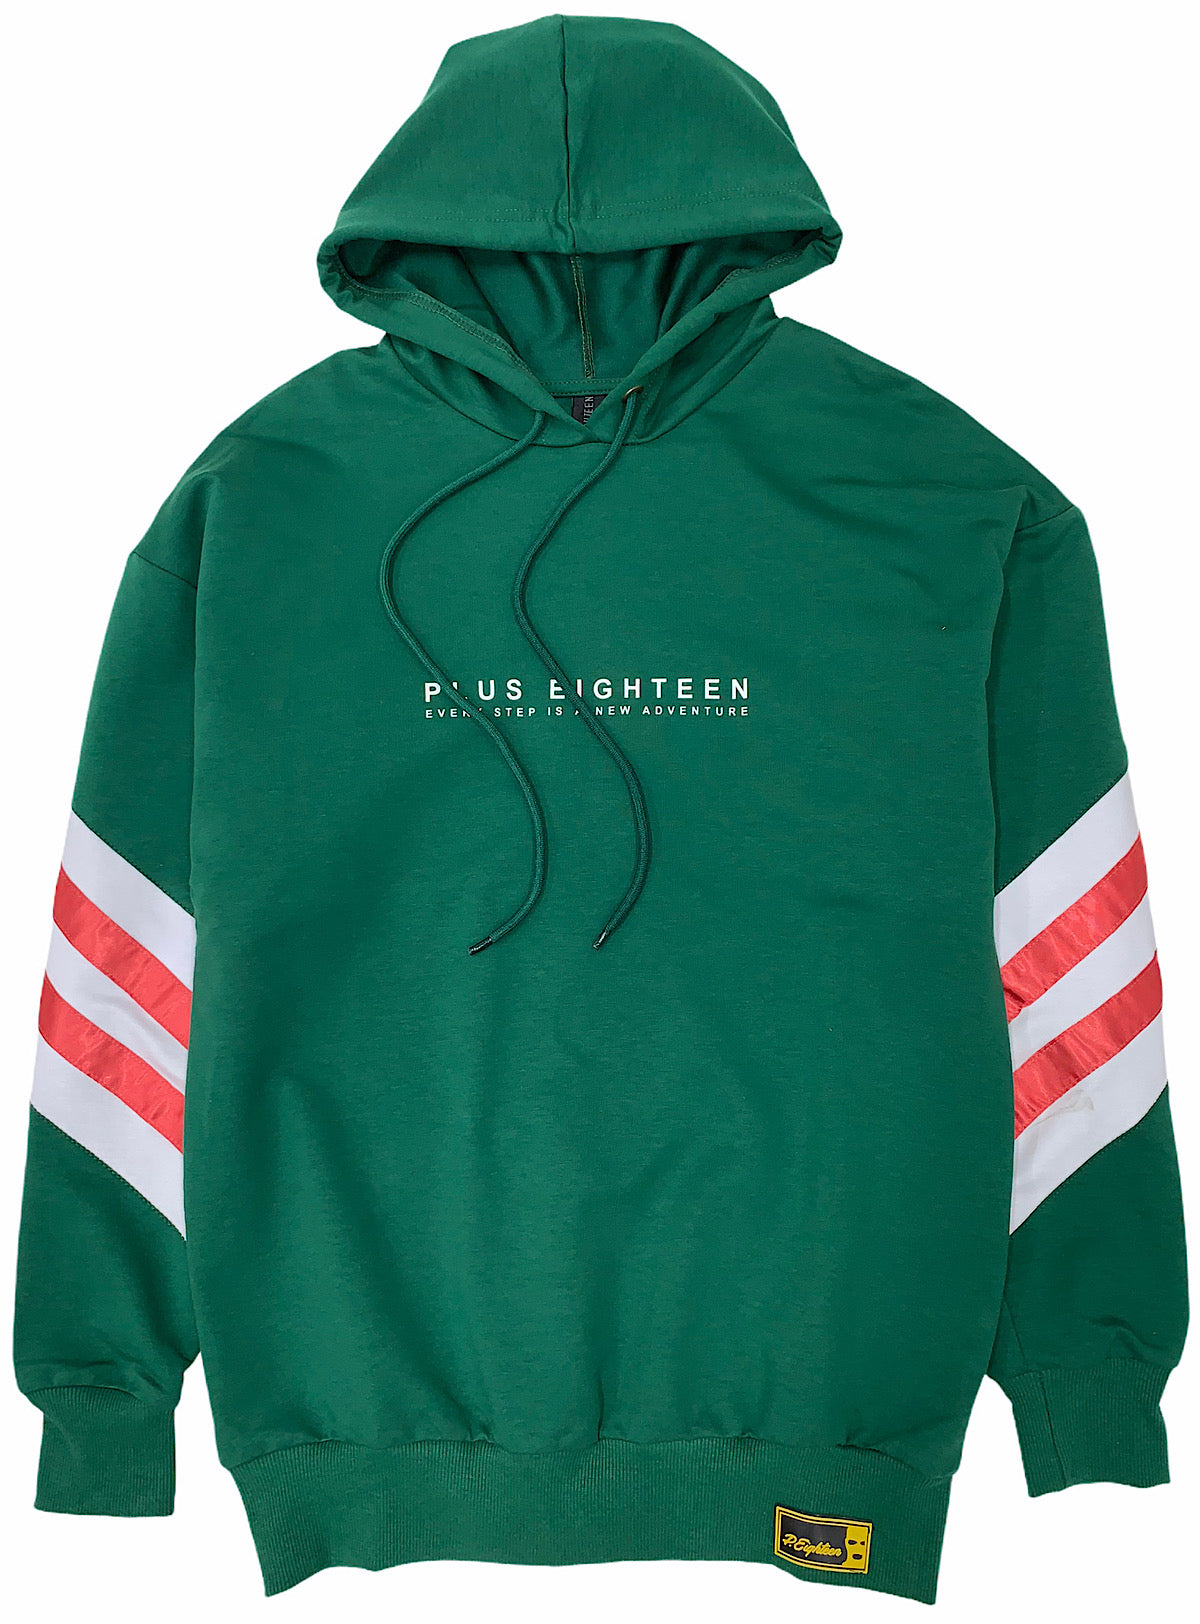 Buyer's Choice Hoodie - Every Step Is A New Adventure - Forest Green - ST-6513